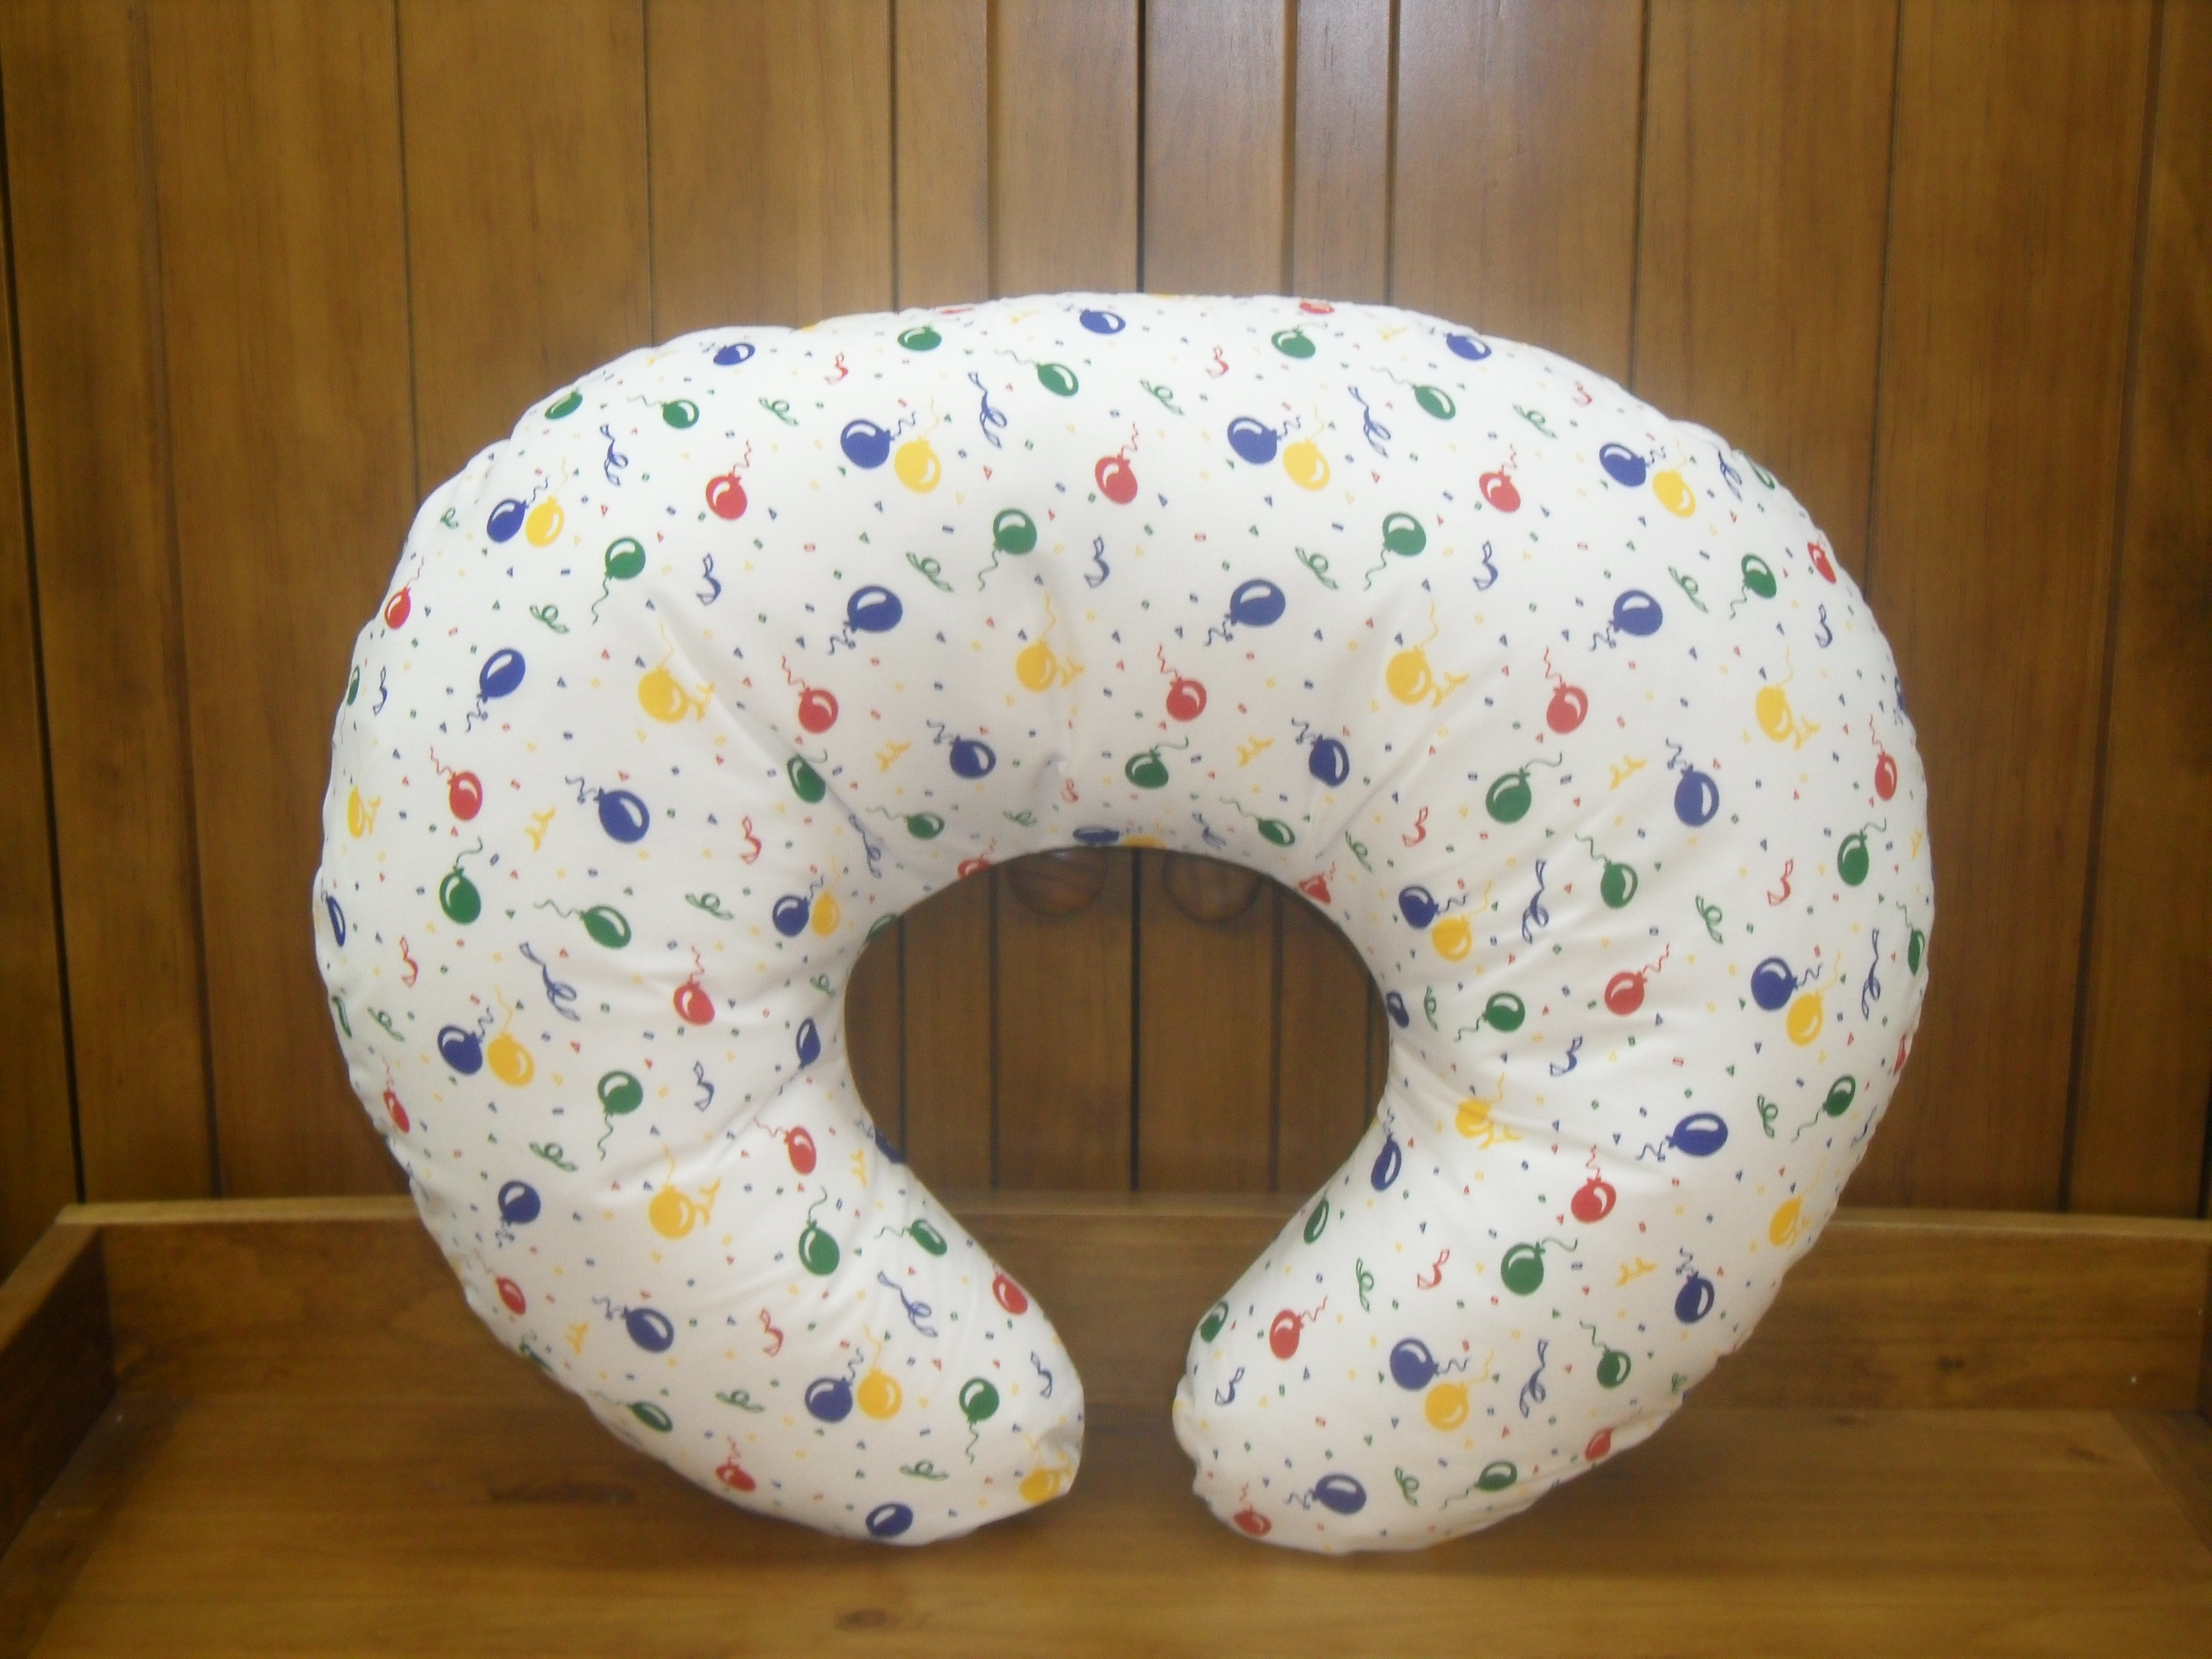 CUSHI BREASTFEEDING / NURSING / PREGNANCY / SUPPORT PILLOW